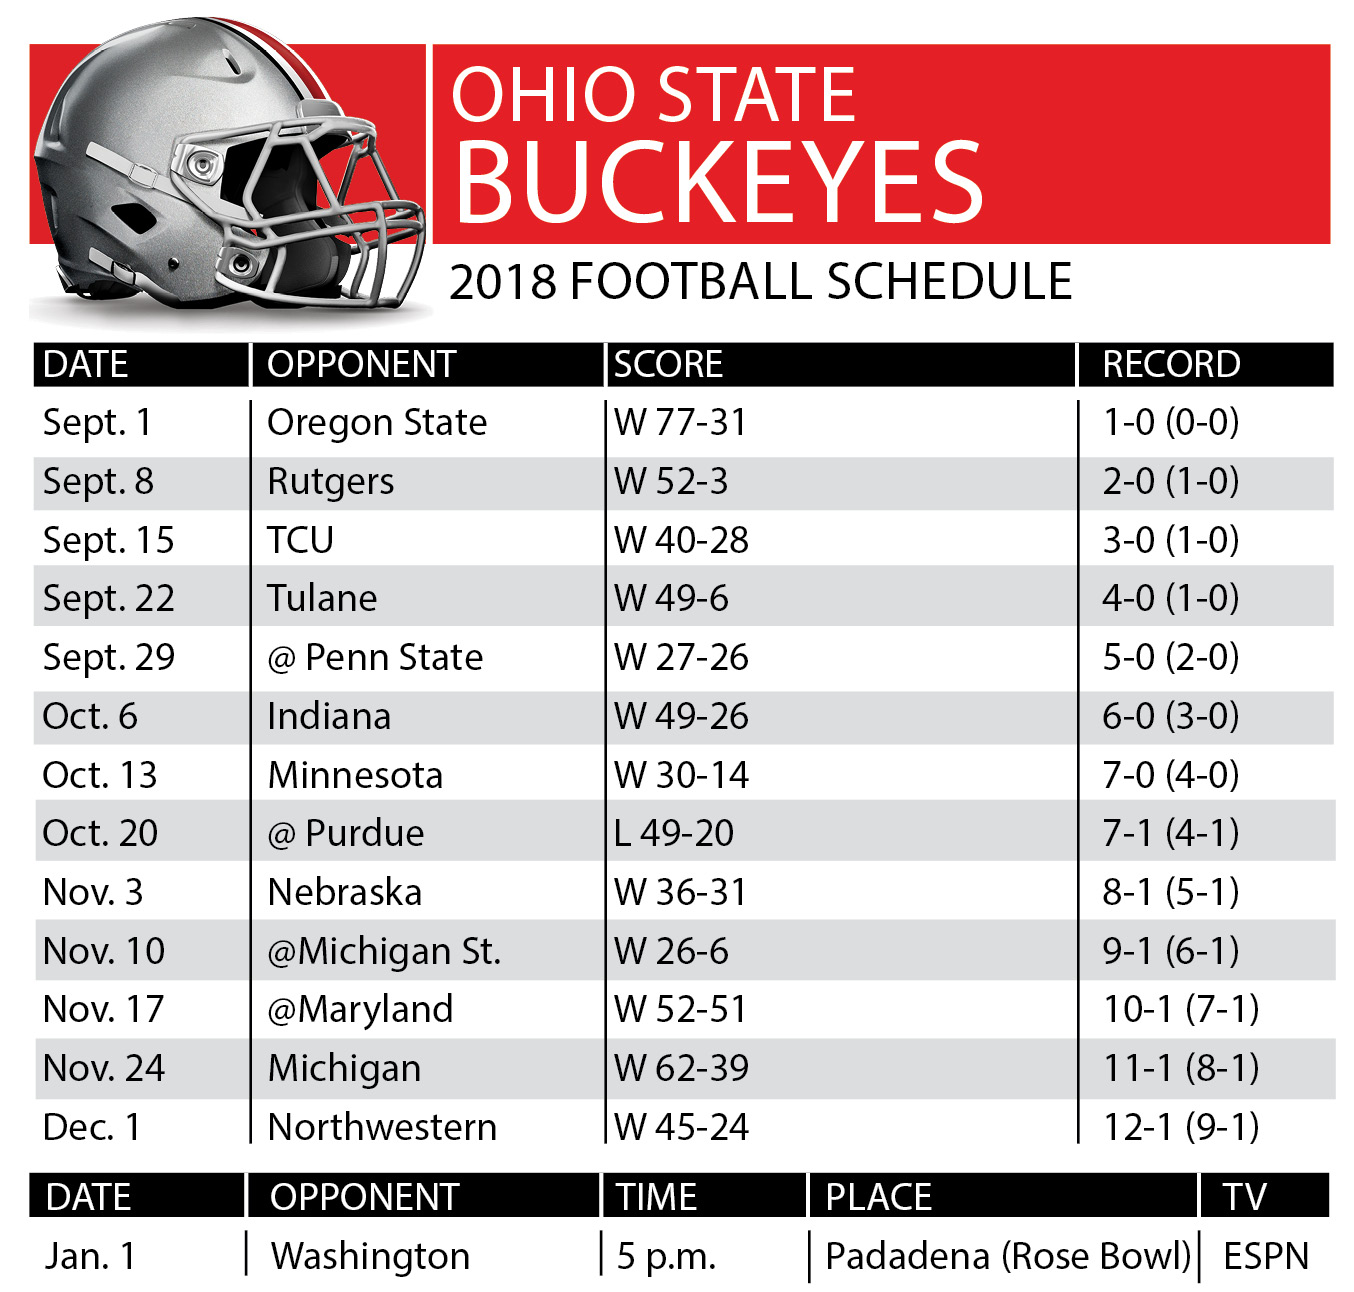 photo about Ohio State Football Schedule Printable known as Ohio Place 2018 soccer plan Toledo Blade